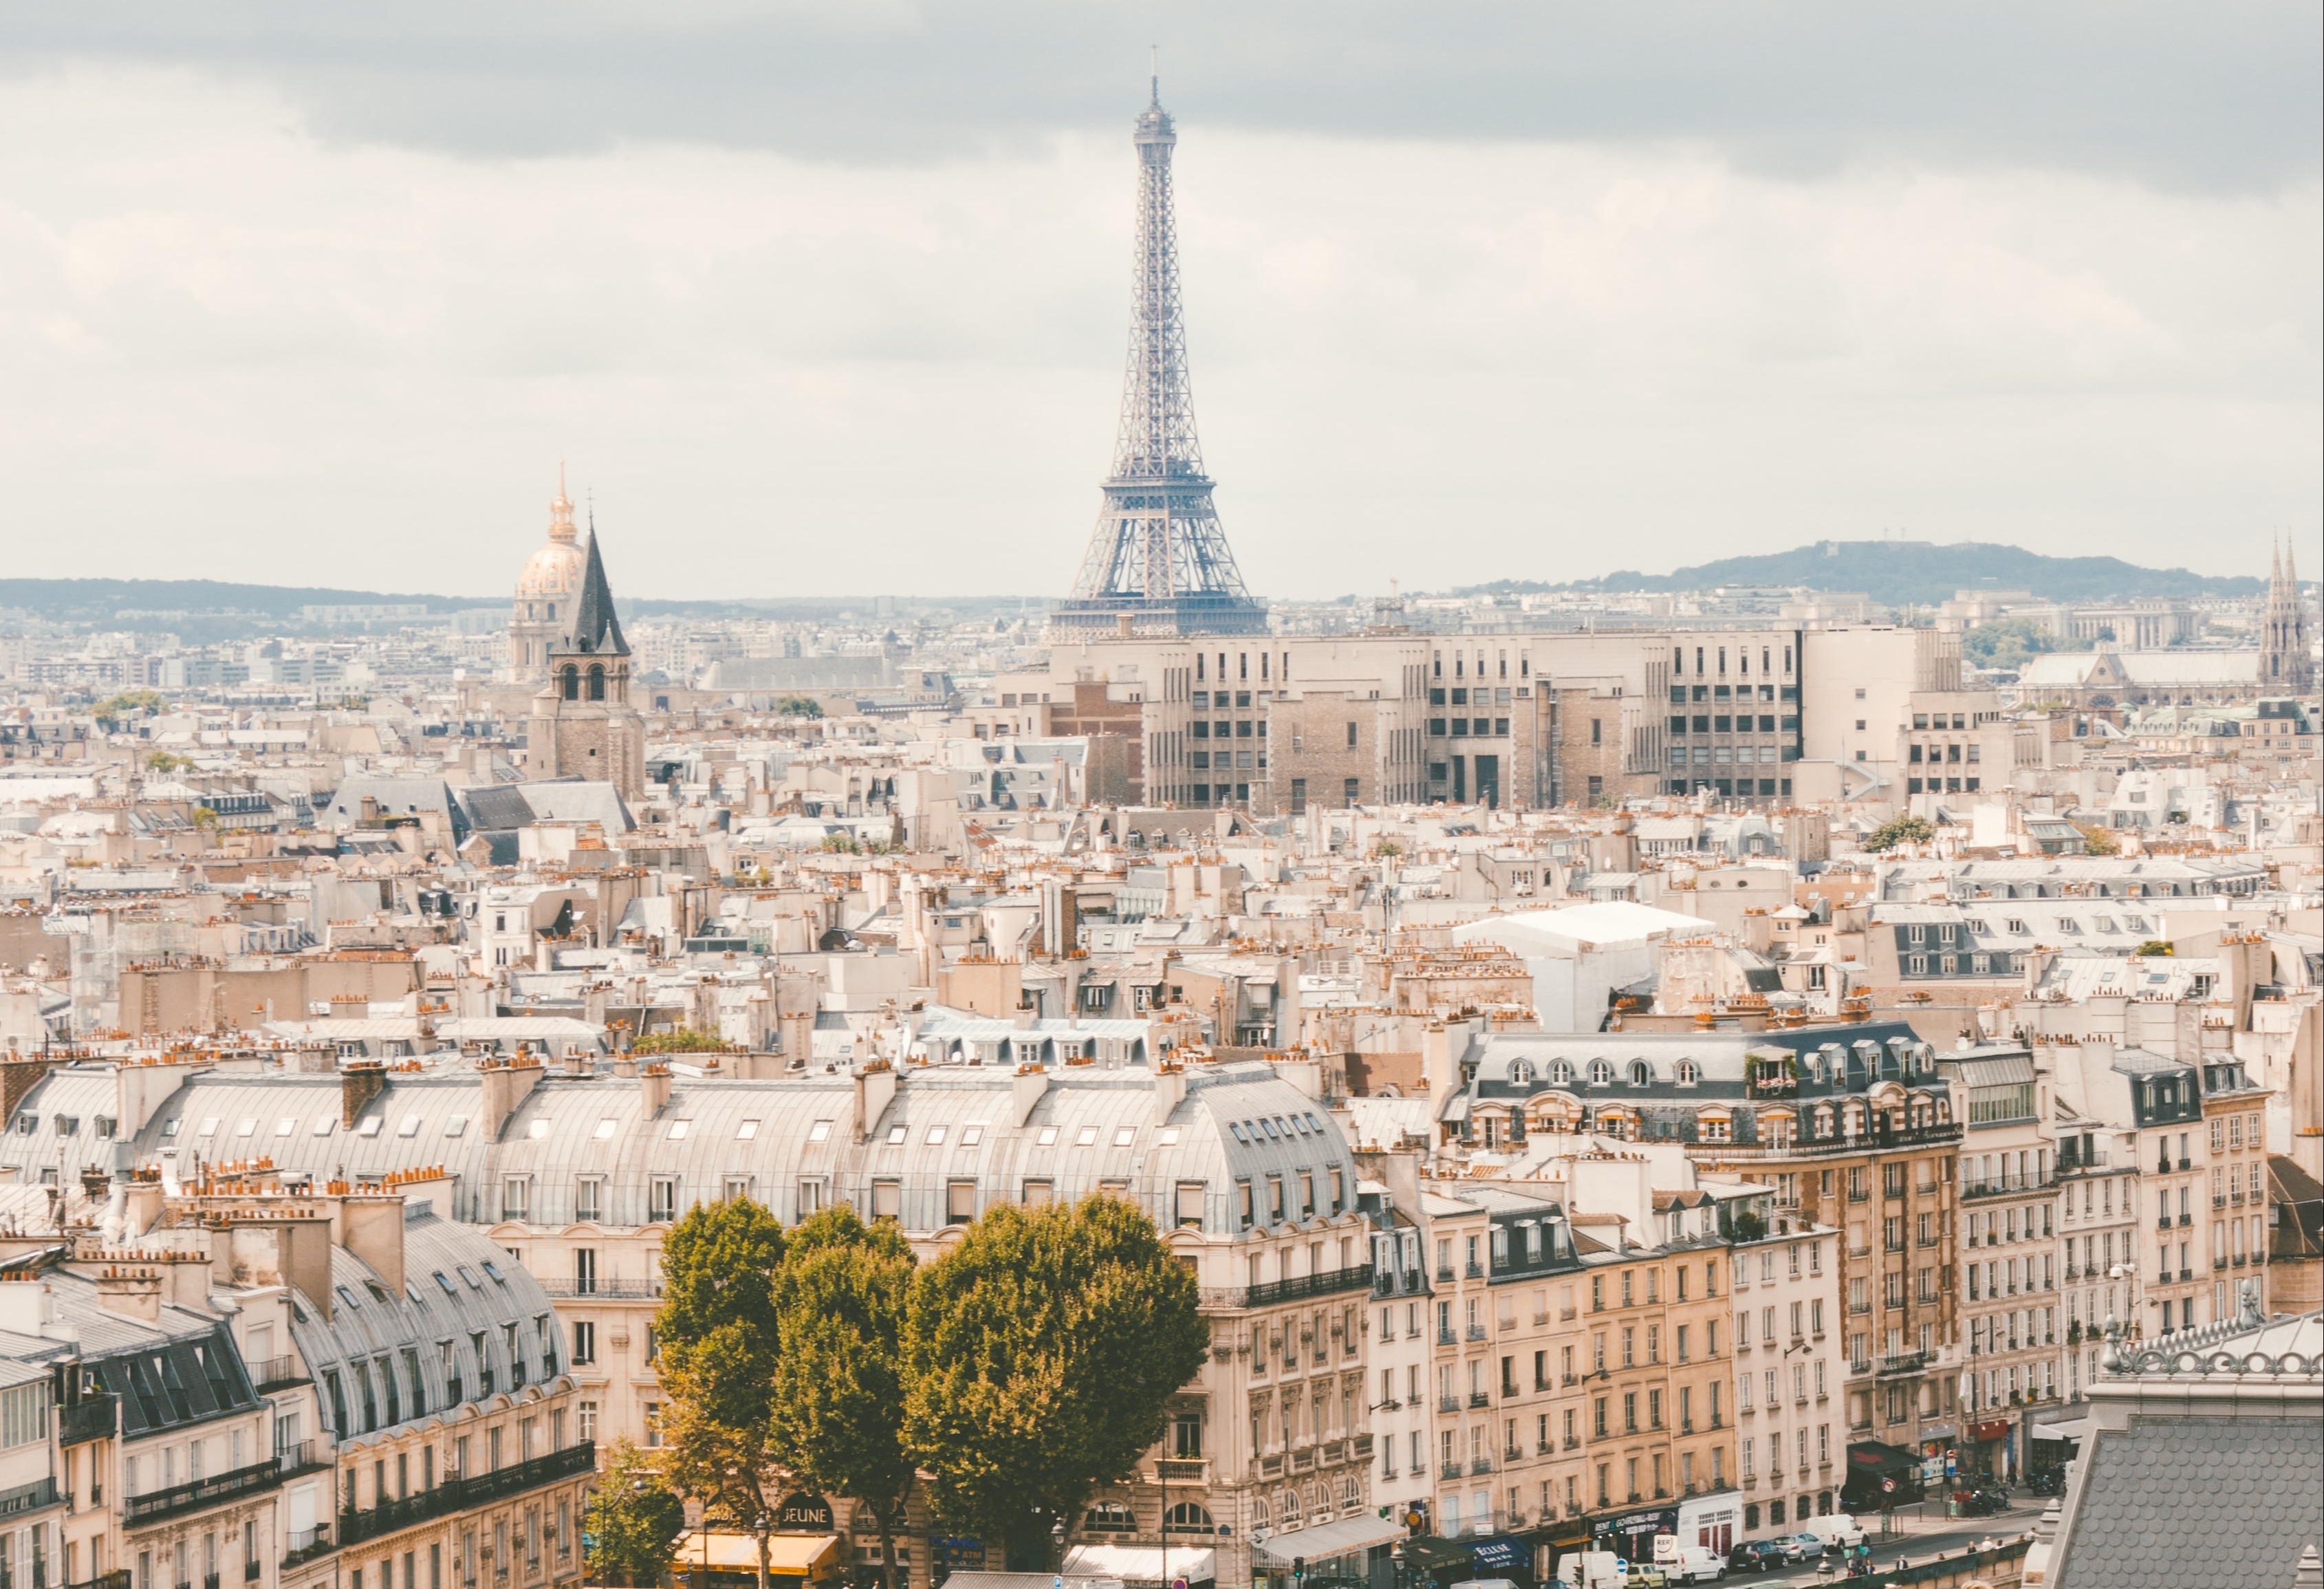 A city view of france with the Eiffel tower in the distance.